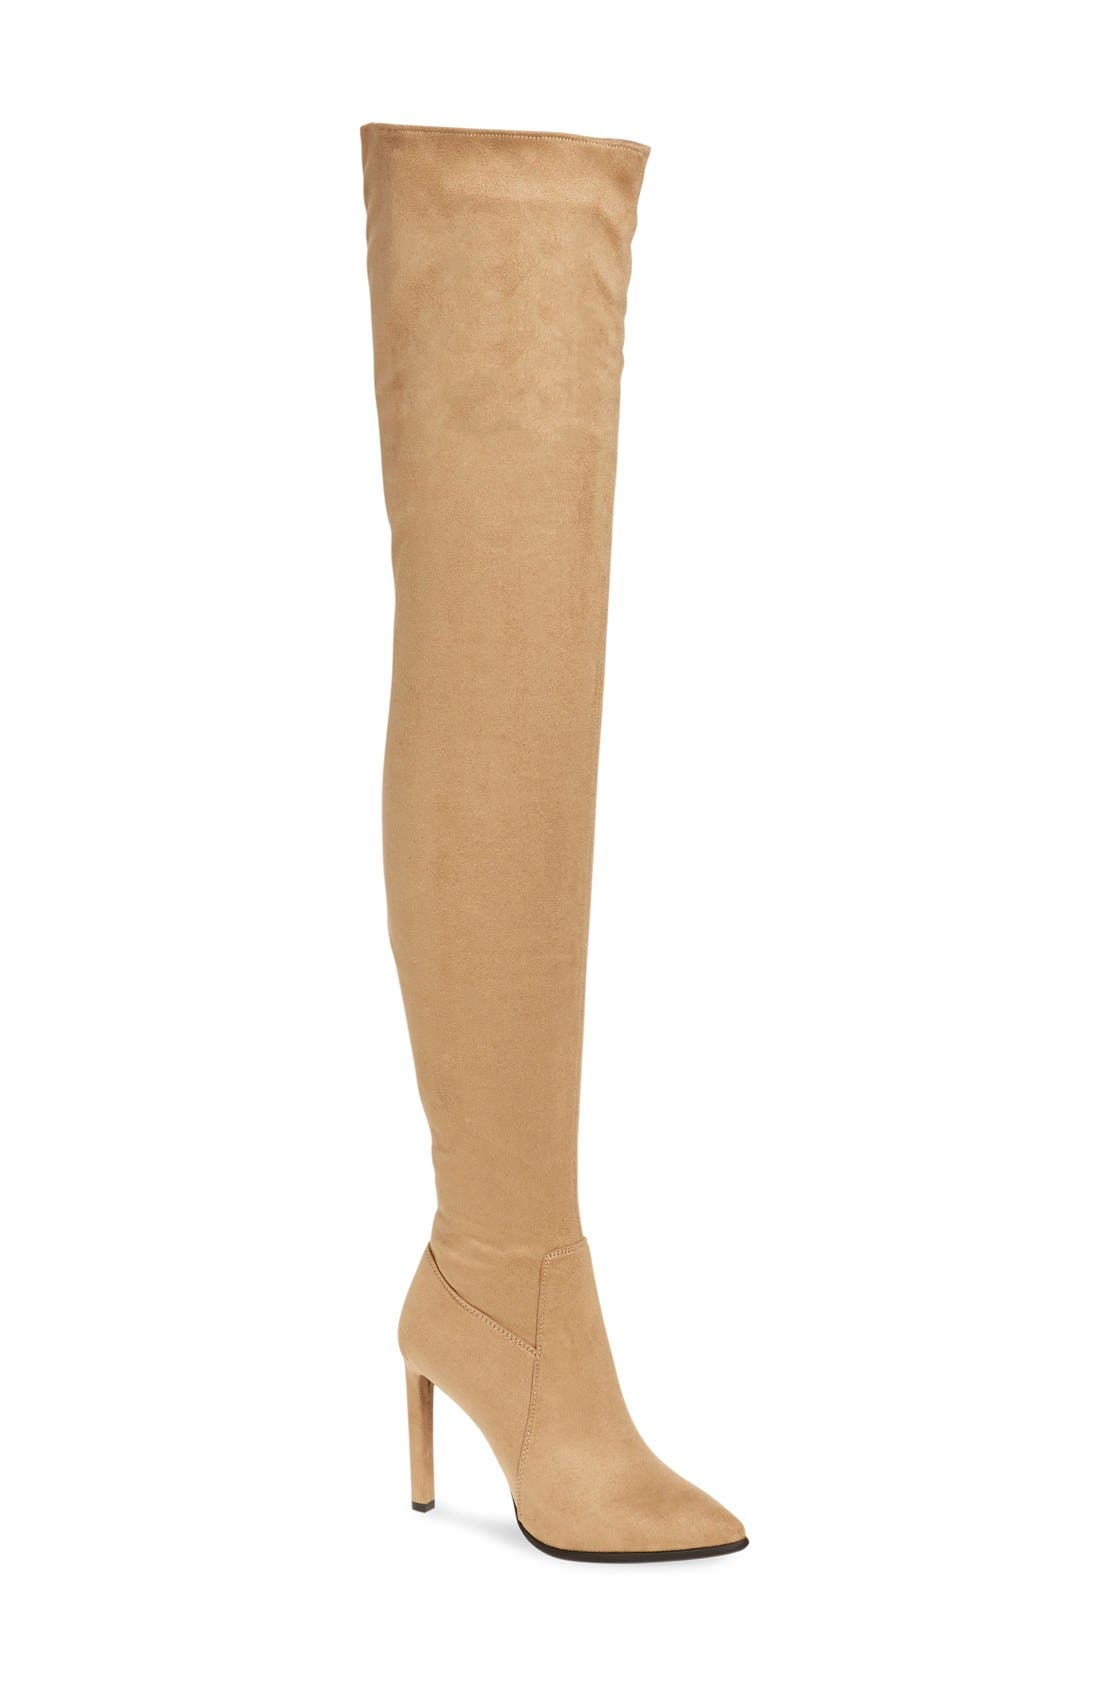 Main Image - Jeffrey Campbell 'Sherise' Over the Knee Boot (Women)